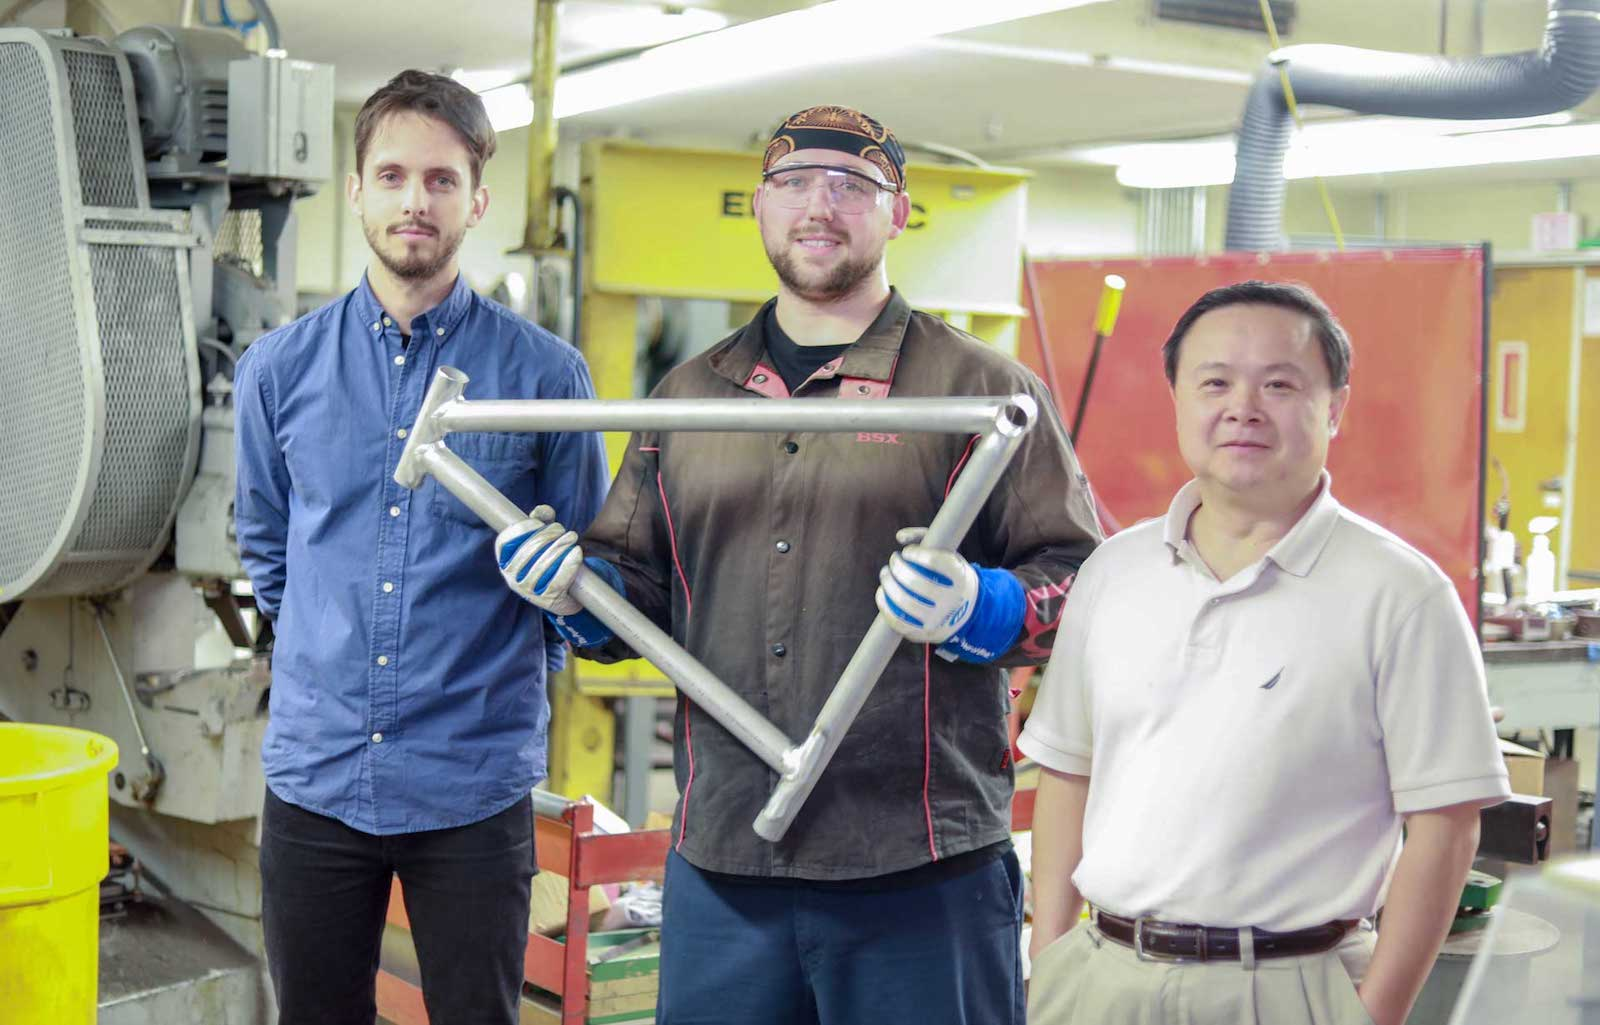 Super-strong but lightweight, AA 7075 now could be more widely used in automobiles and other manufacturing thanks to UCLA research